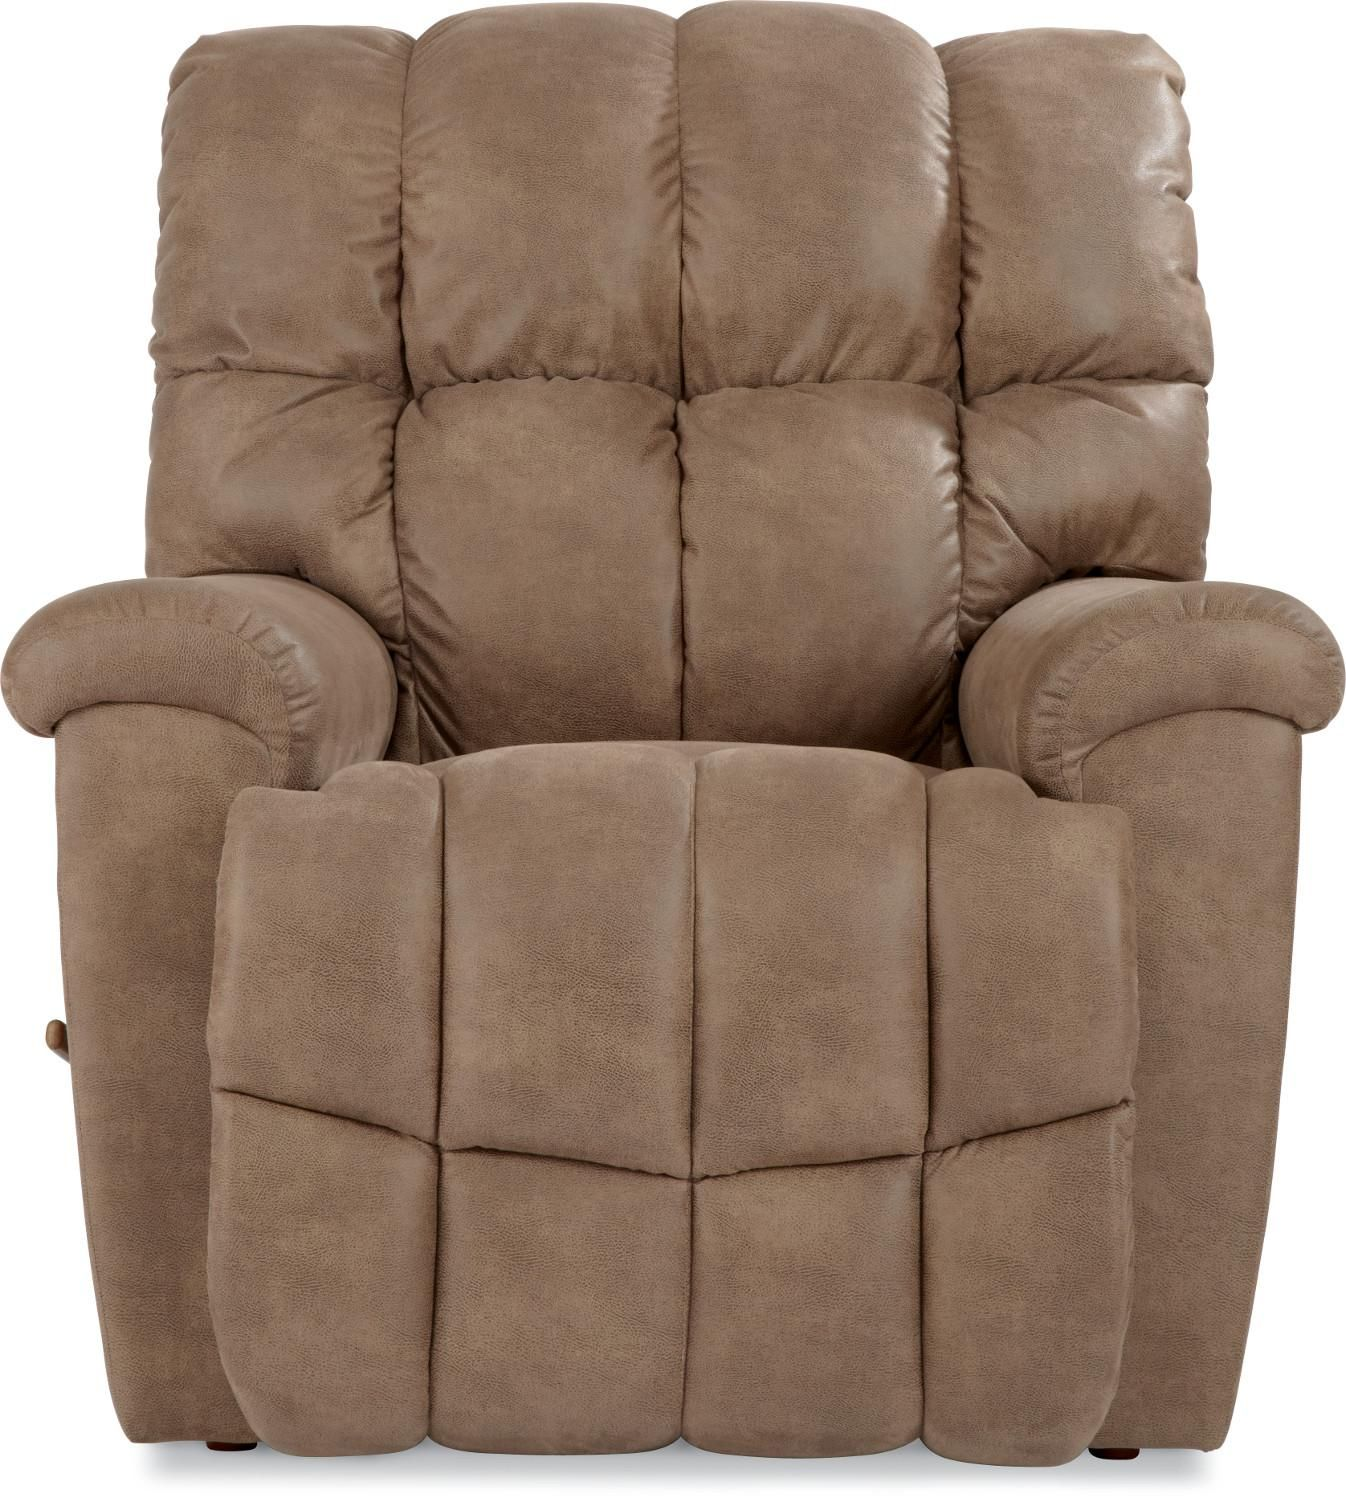 sectional recliners boy size reclining collins of lazy price living sofas leather startling power thomasville sleeper furniture sofa sale full loveseat room